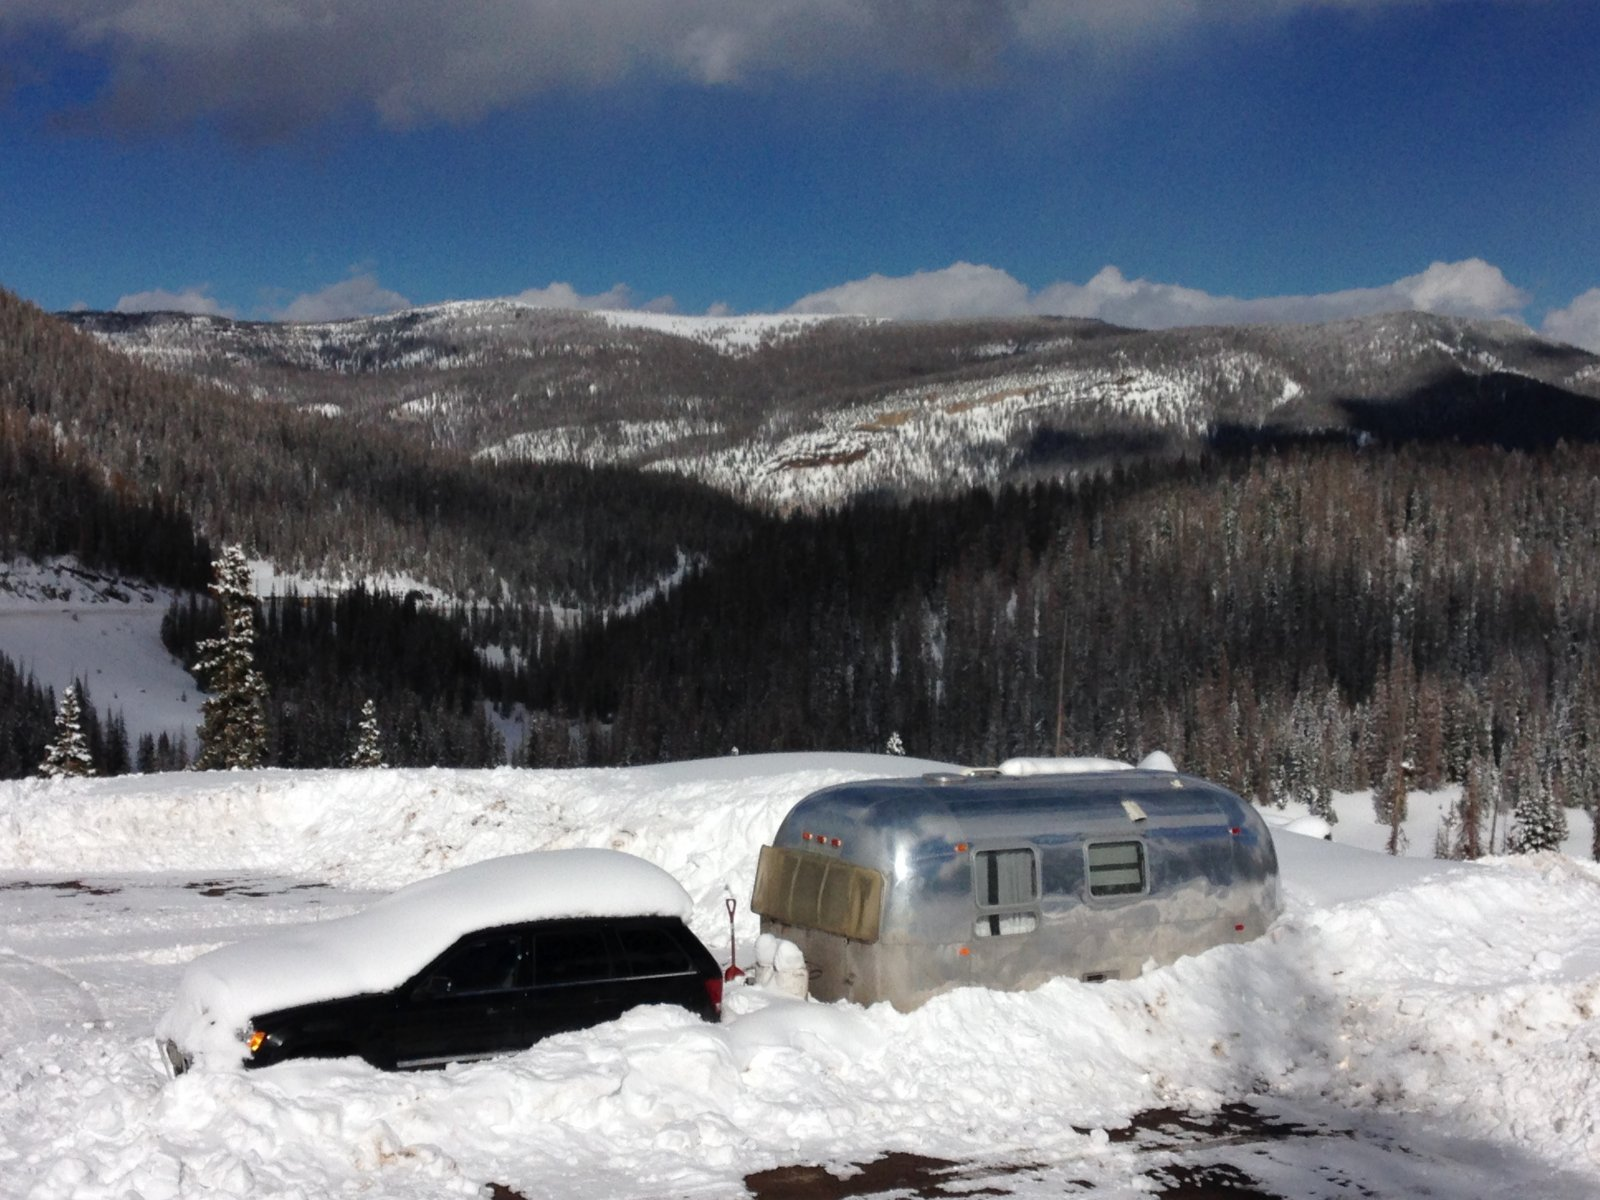 Click image for larger version  Name:1403 Globetrotter in the Mountains.jpg Views:73 Size:295.1 KB ID:224210